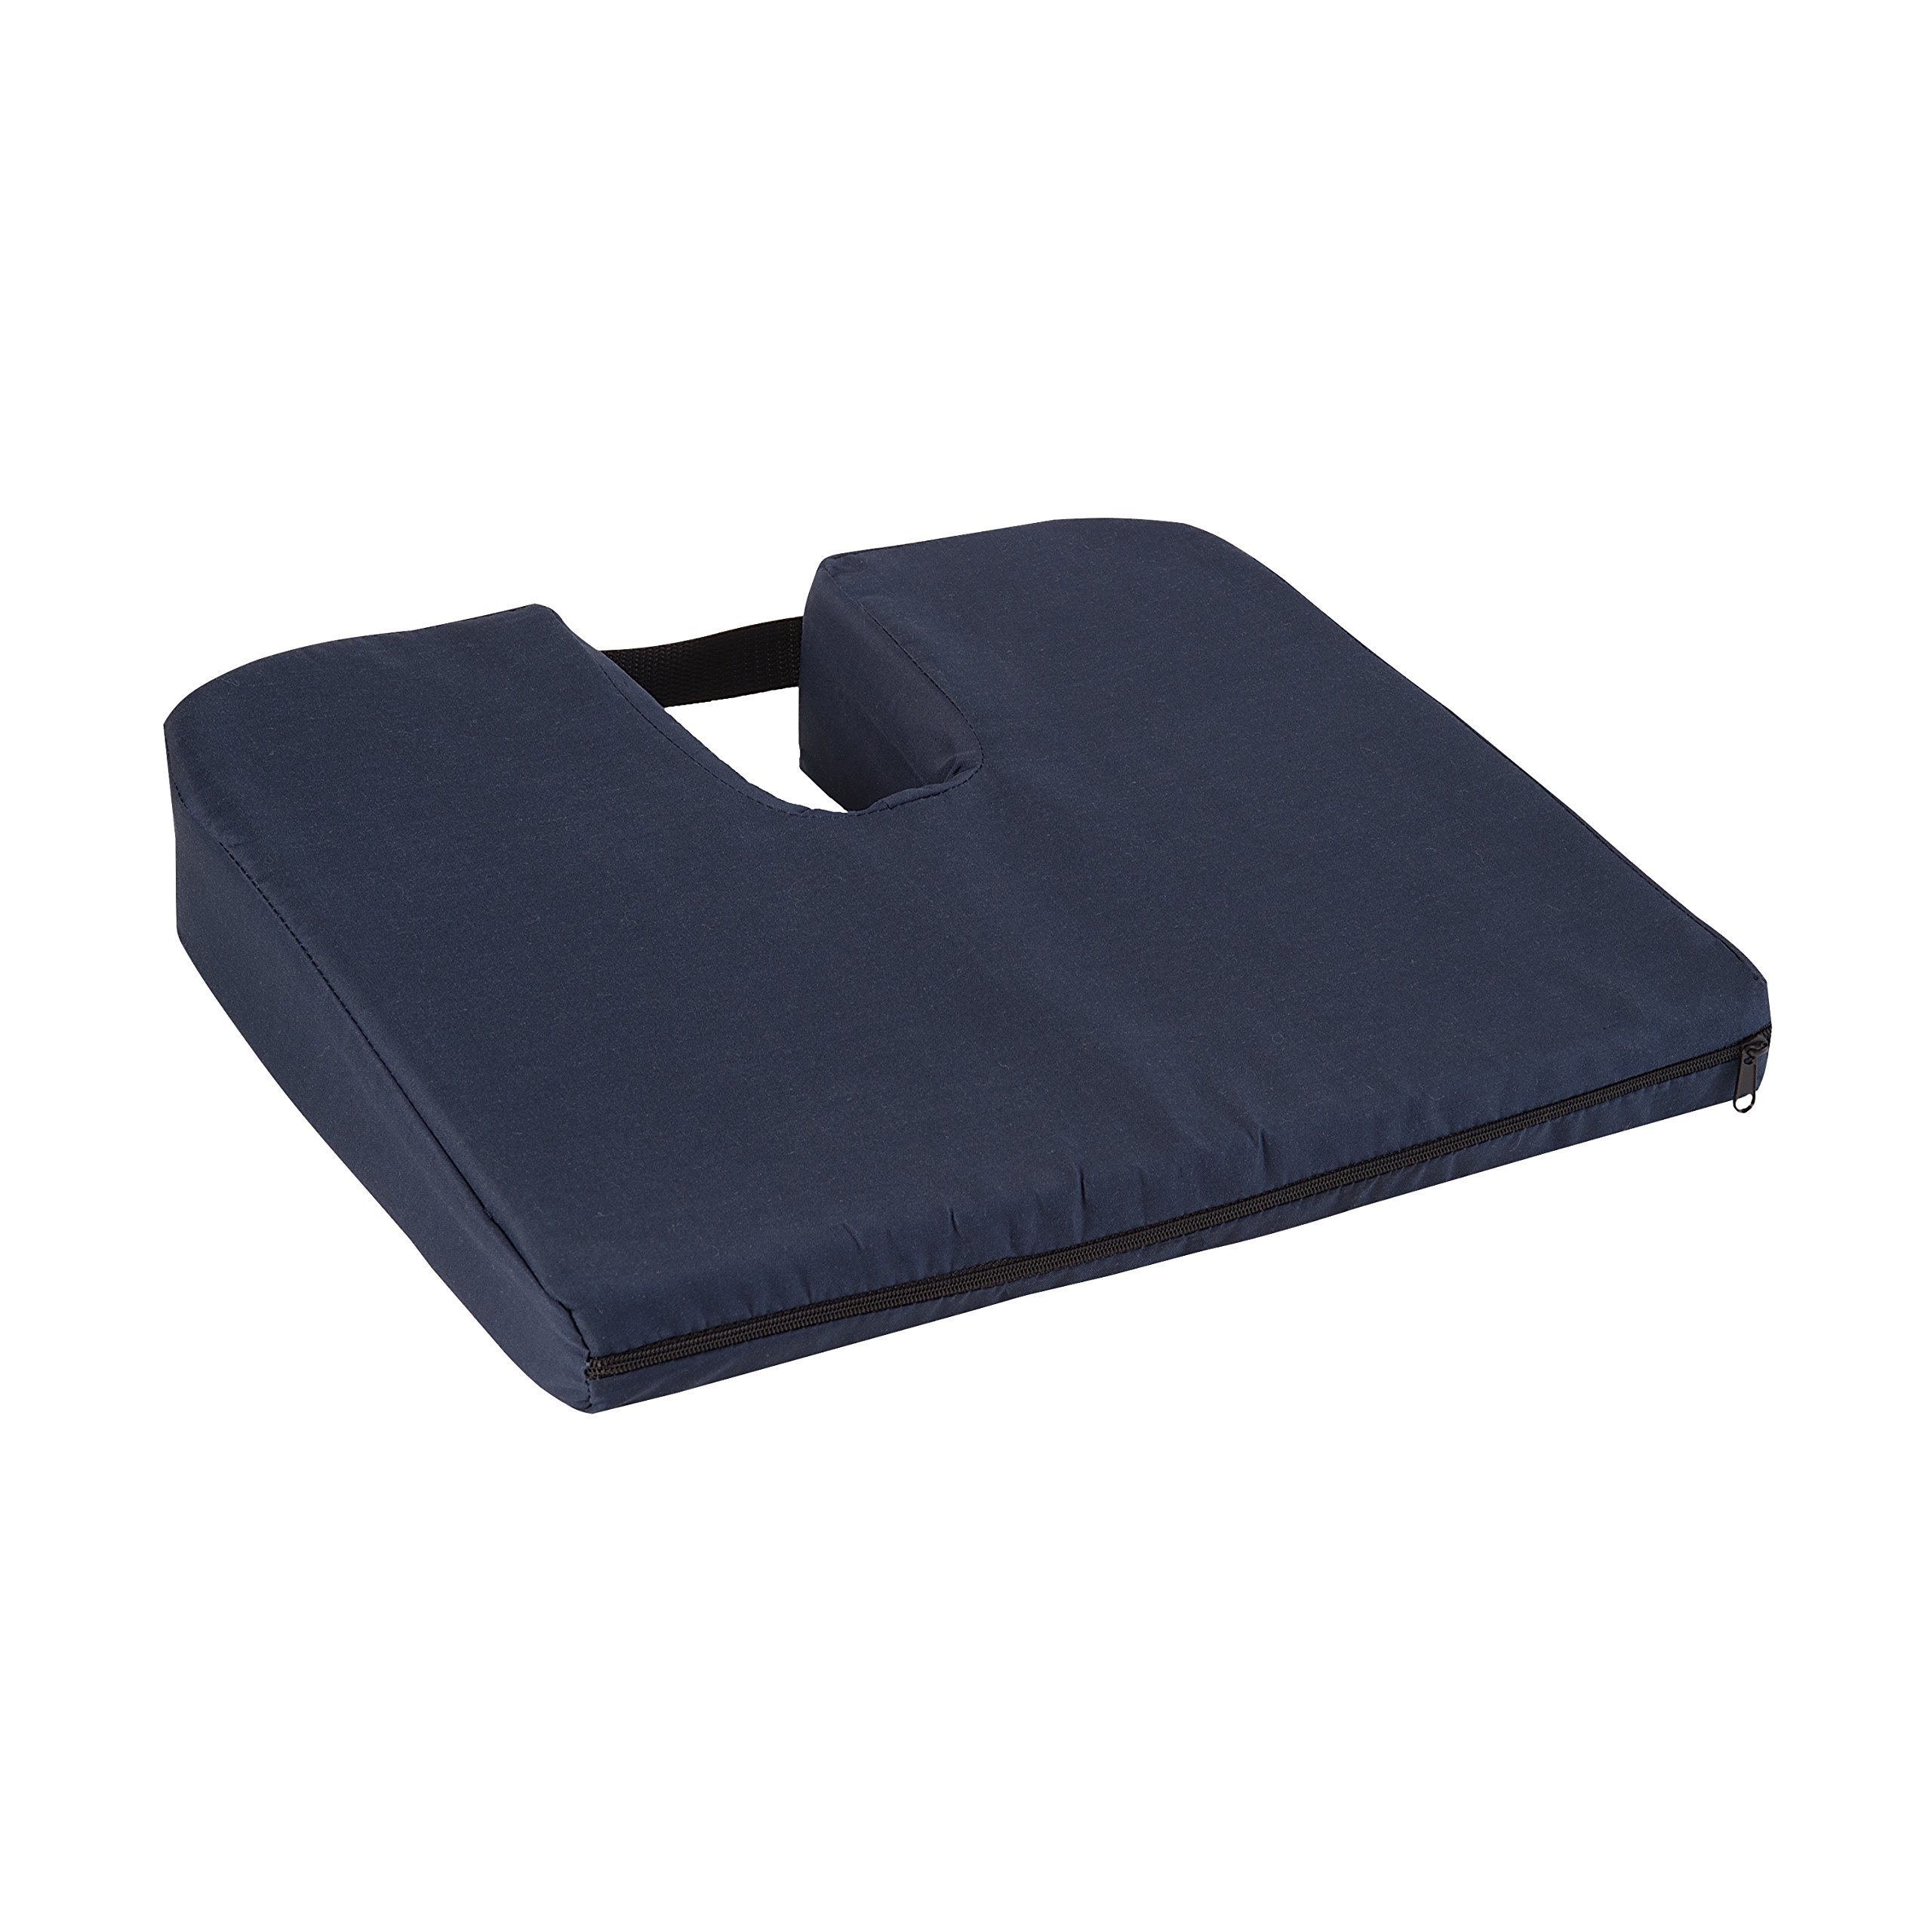 Duro-Med Coccyx Cushion, Coccyx Pillow, Coccyx Seat Cushion, Helps with Sciatica Back Pain, Navy, 14.8 by 13.1 by 2.9 inches